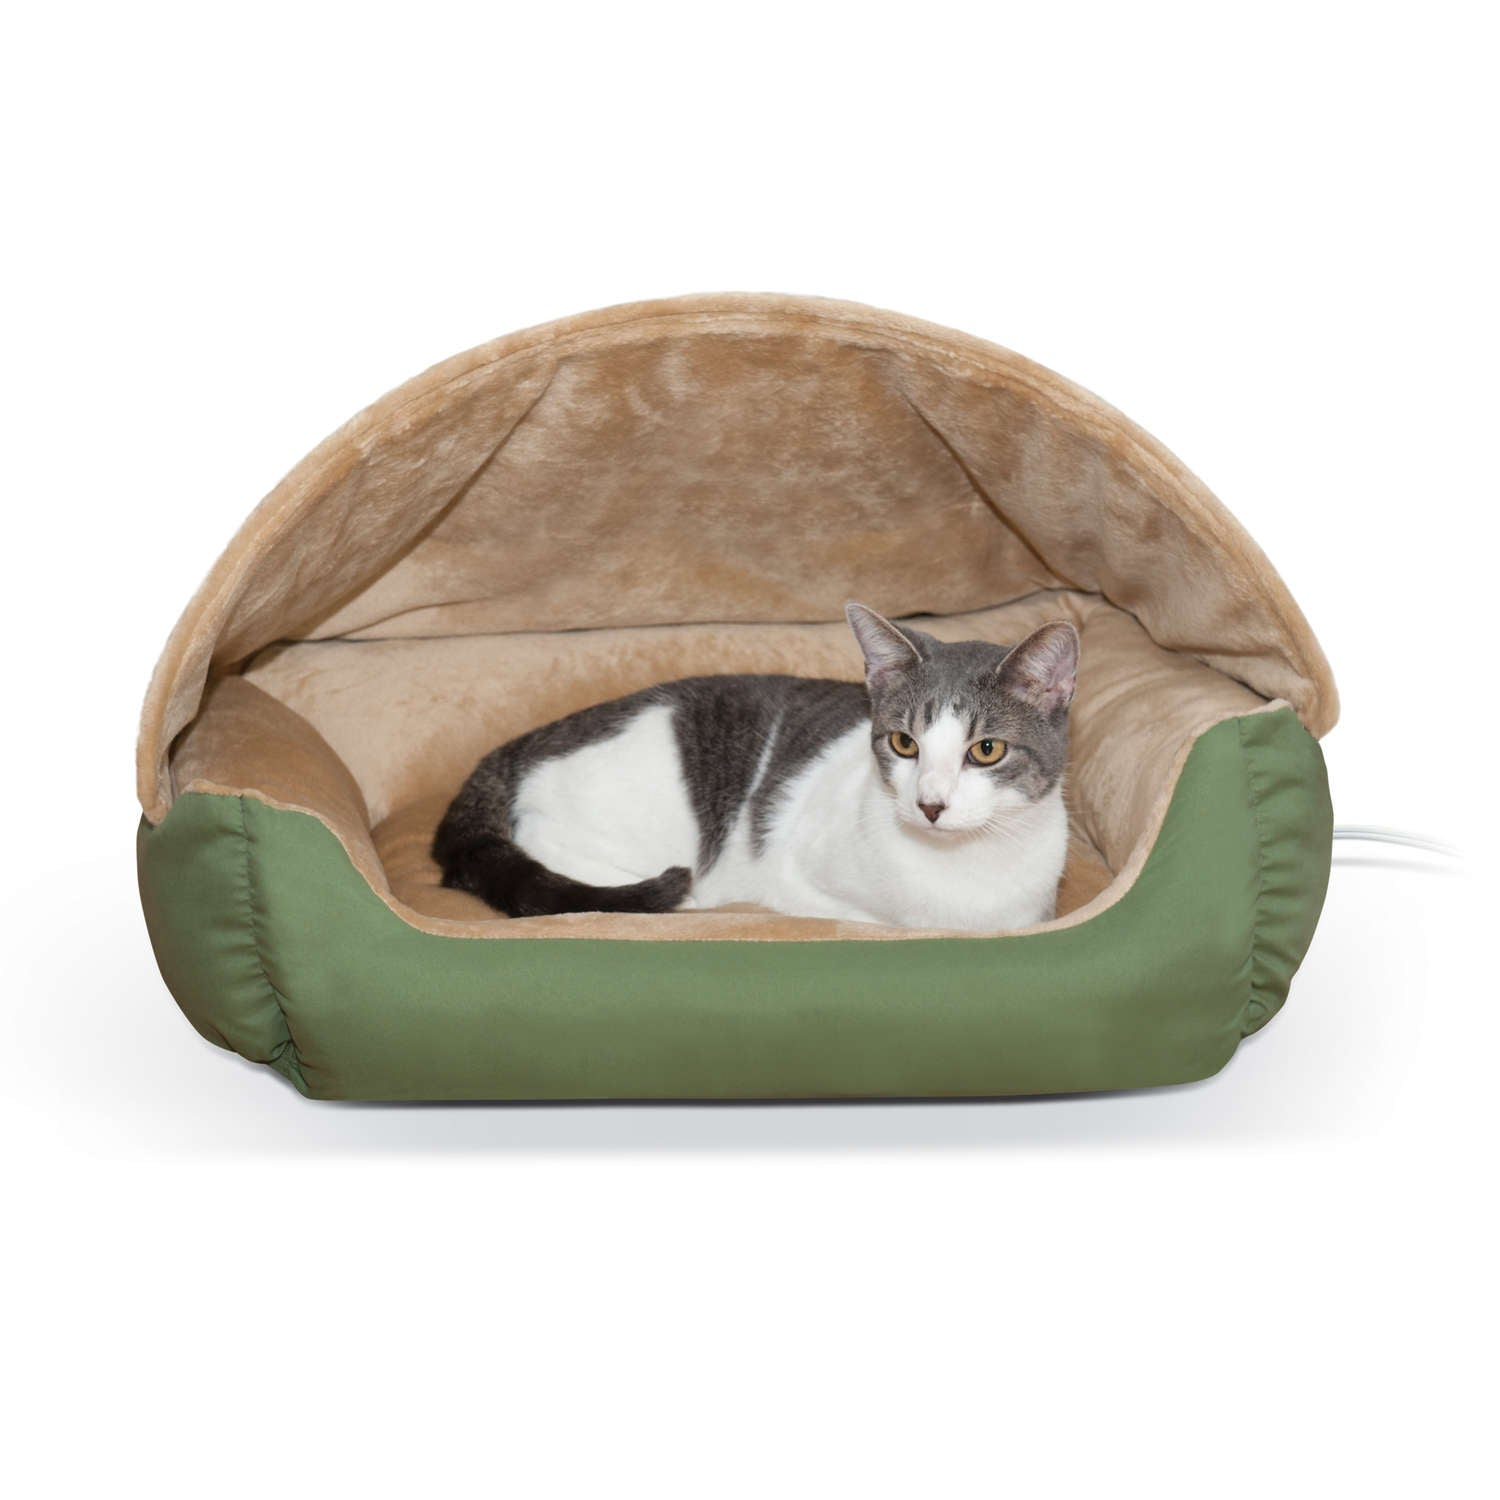 K&H Pet Products KH4043 Thermo-Hooded Pet Lounger Bed